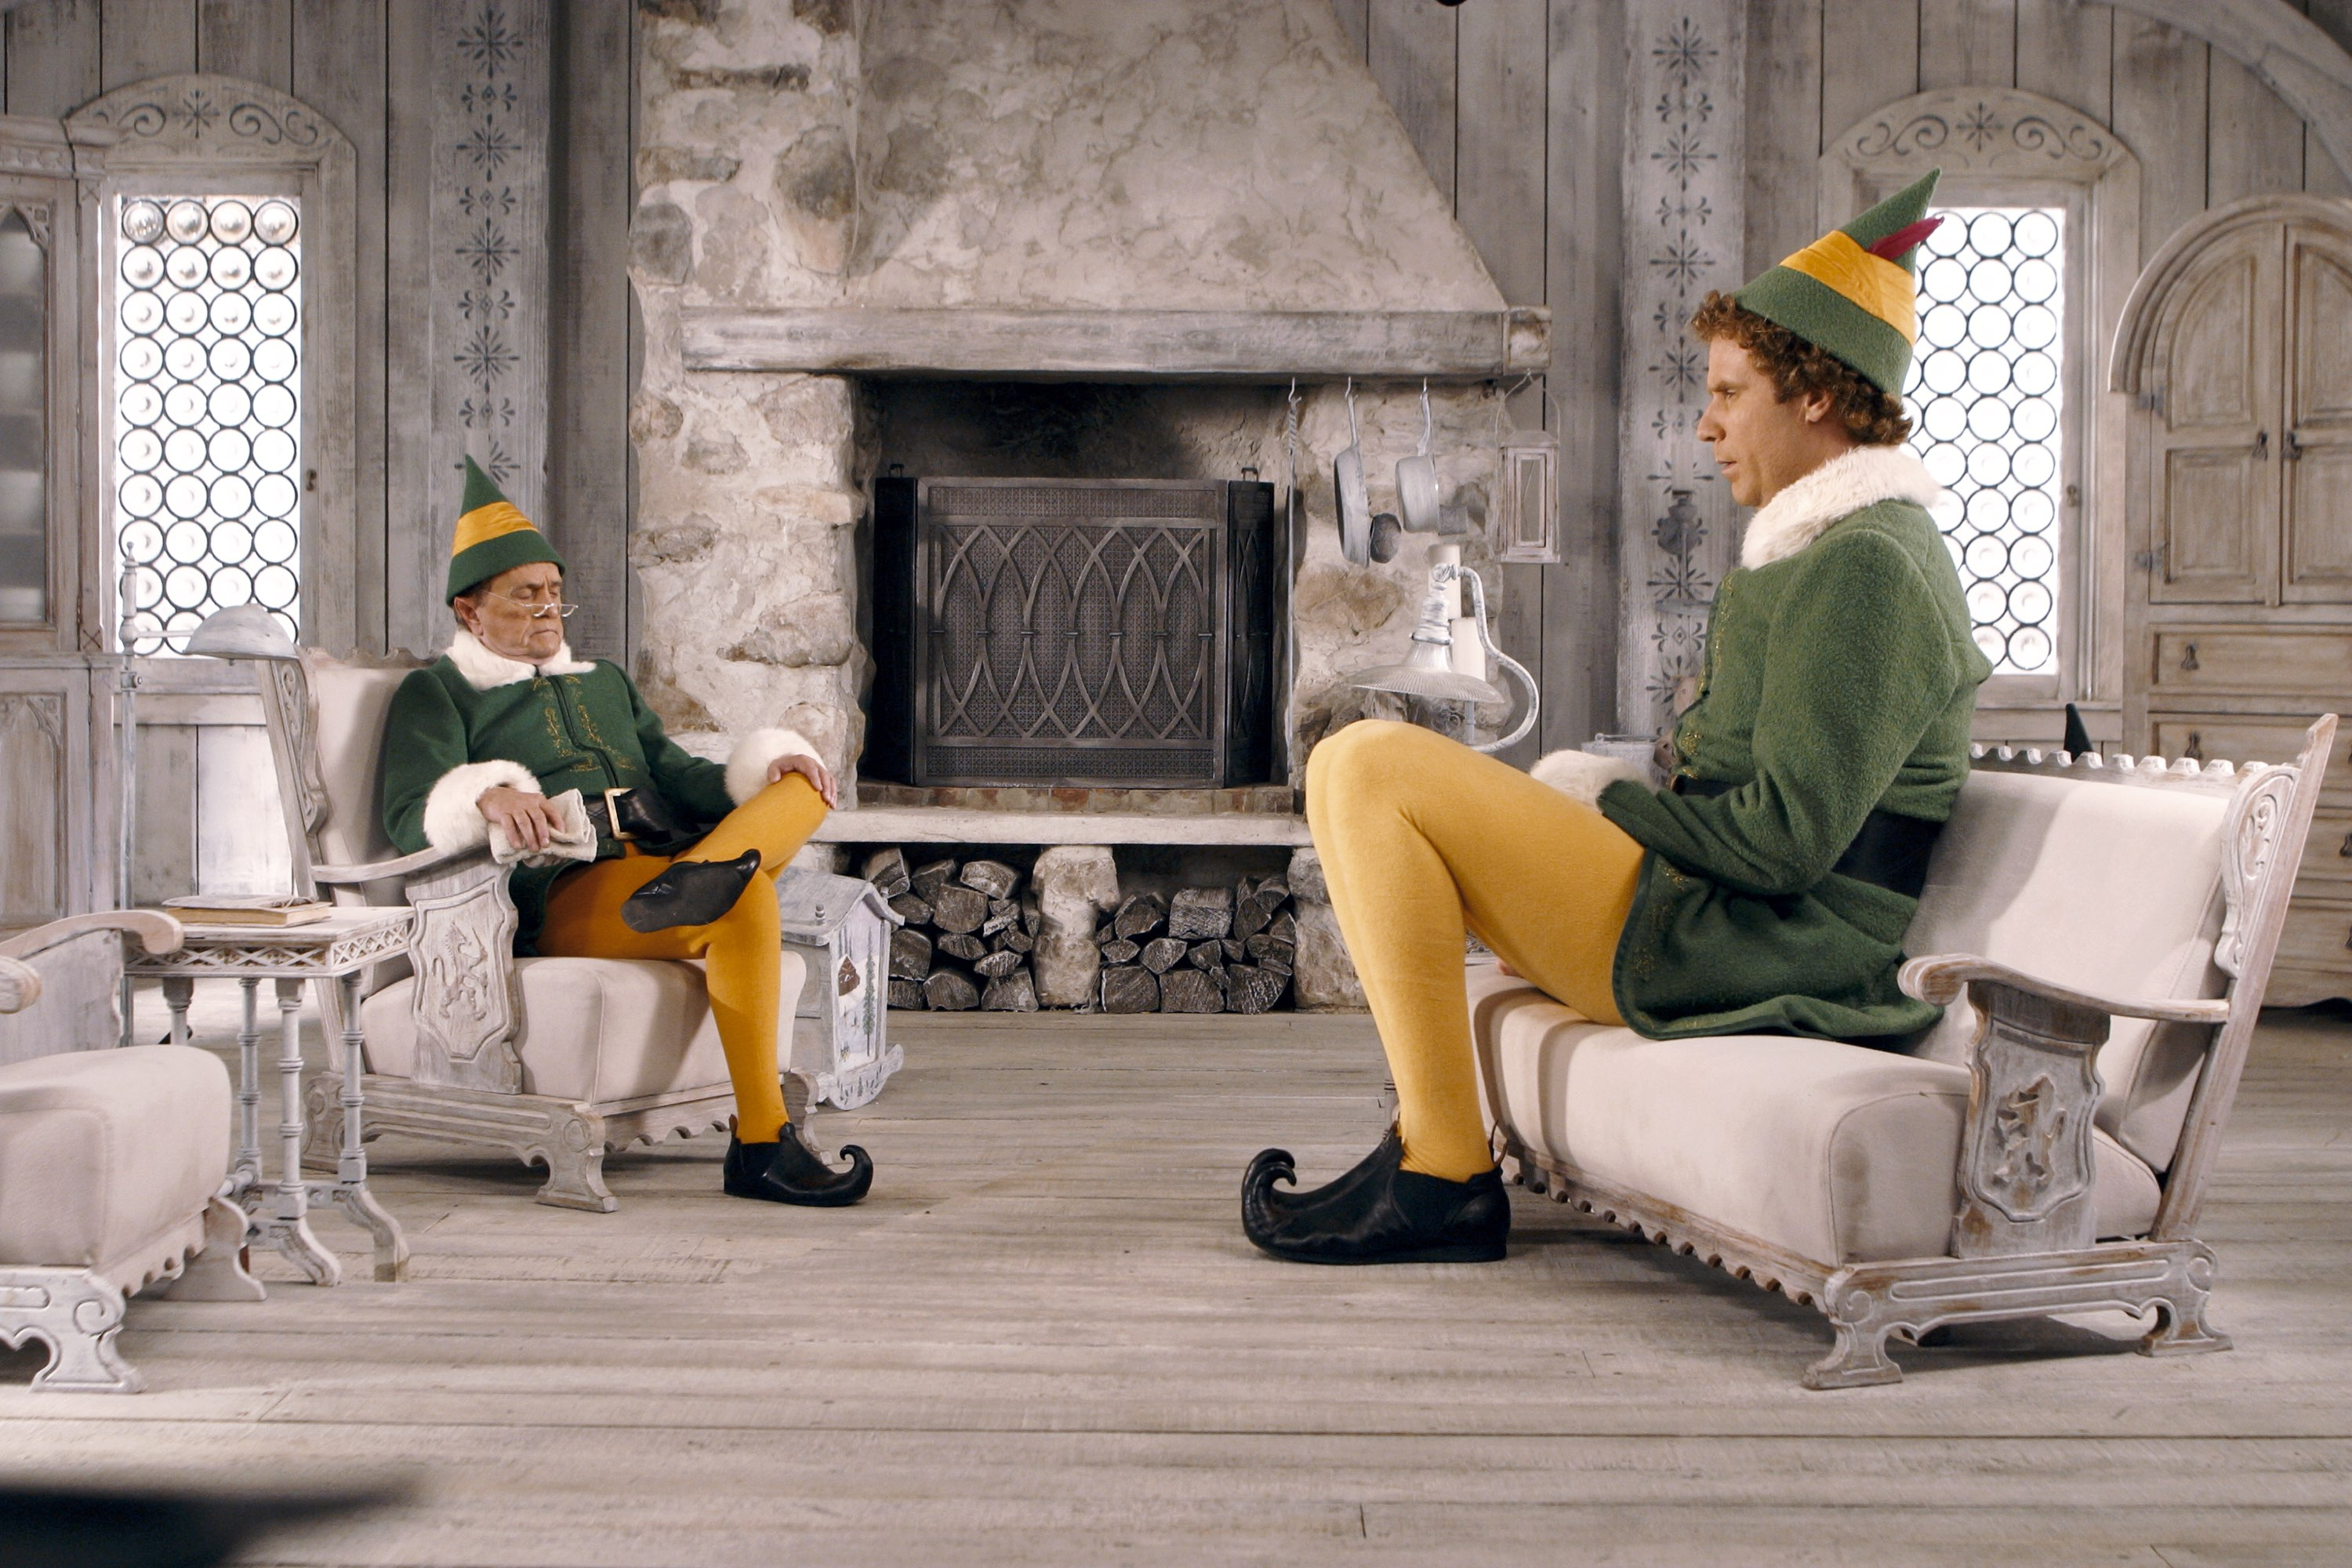 Buddy's Back! Elf returns to the big screen this holiday season